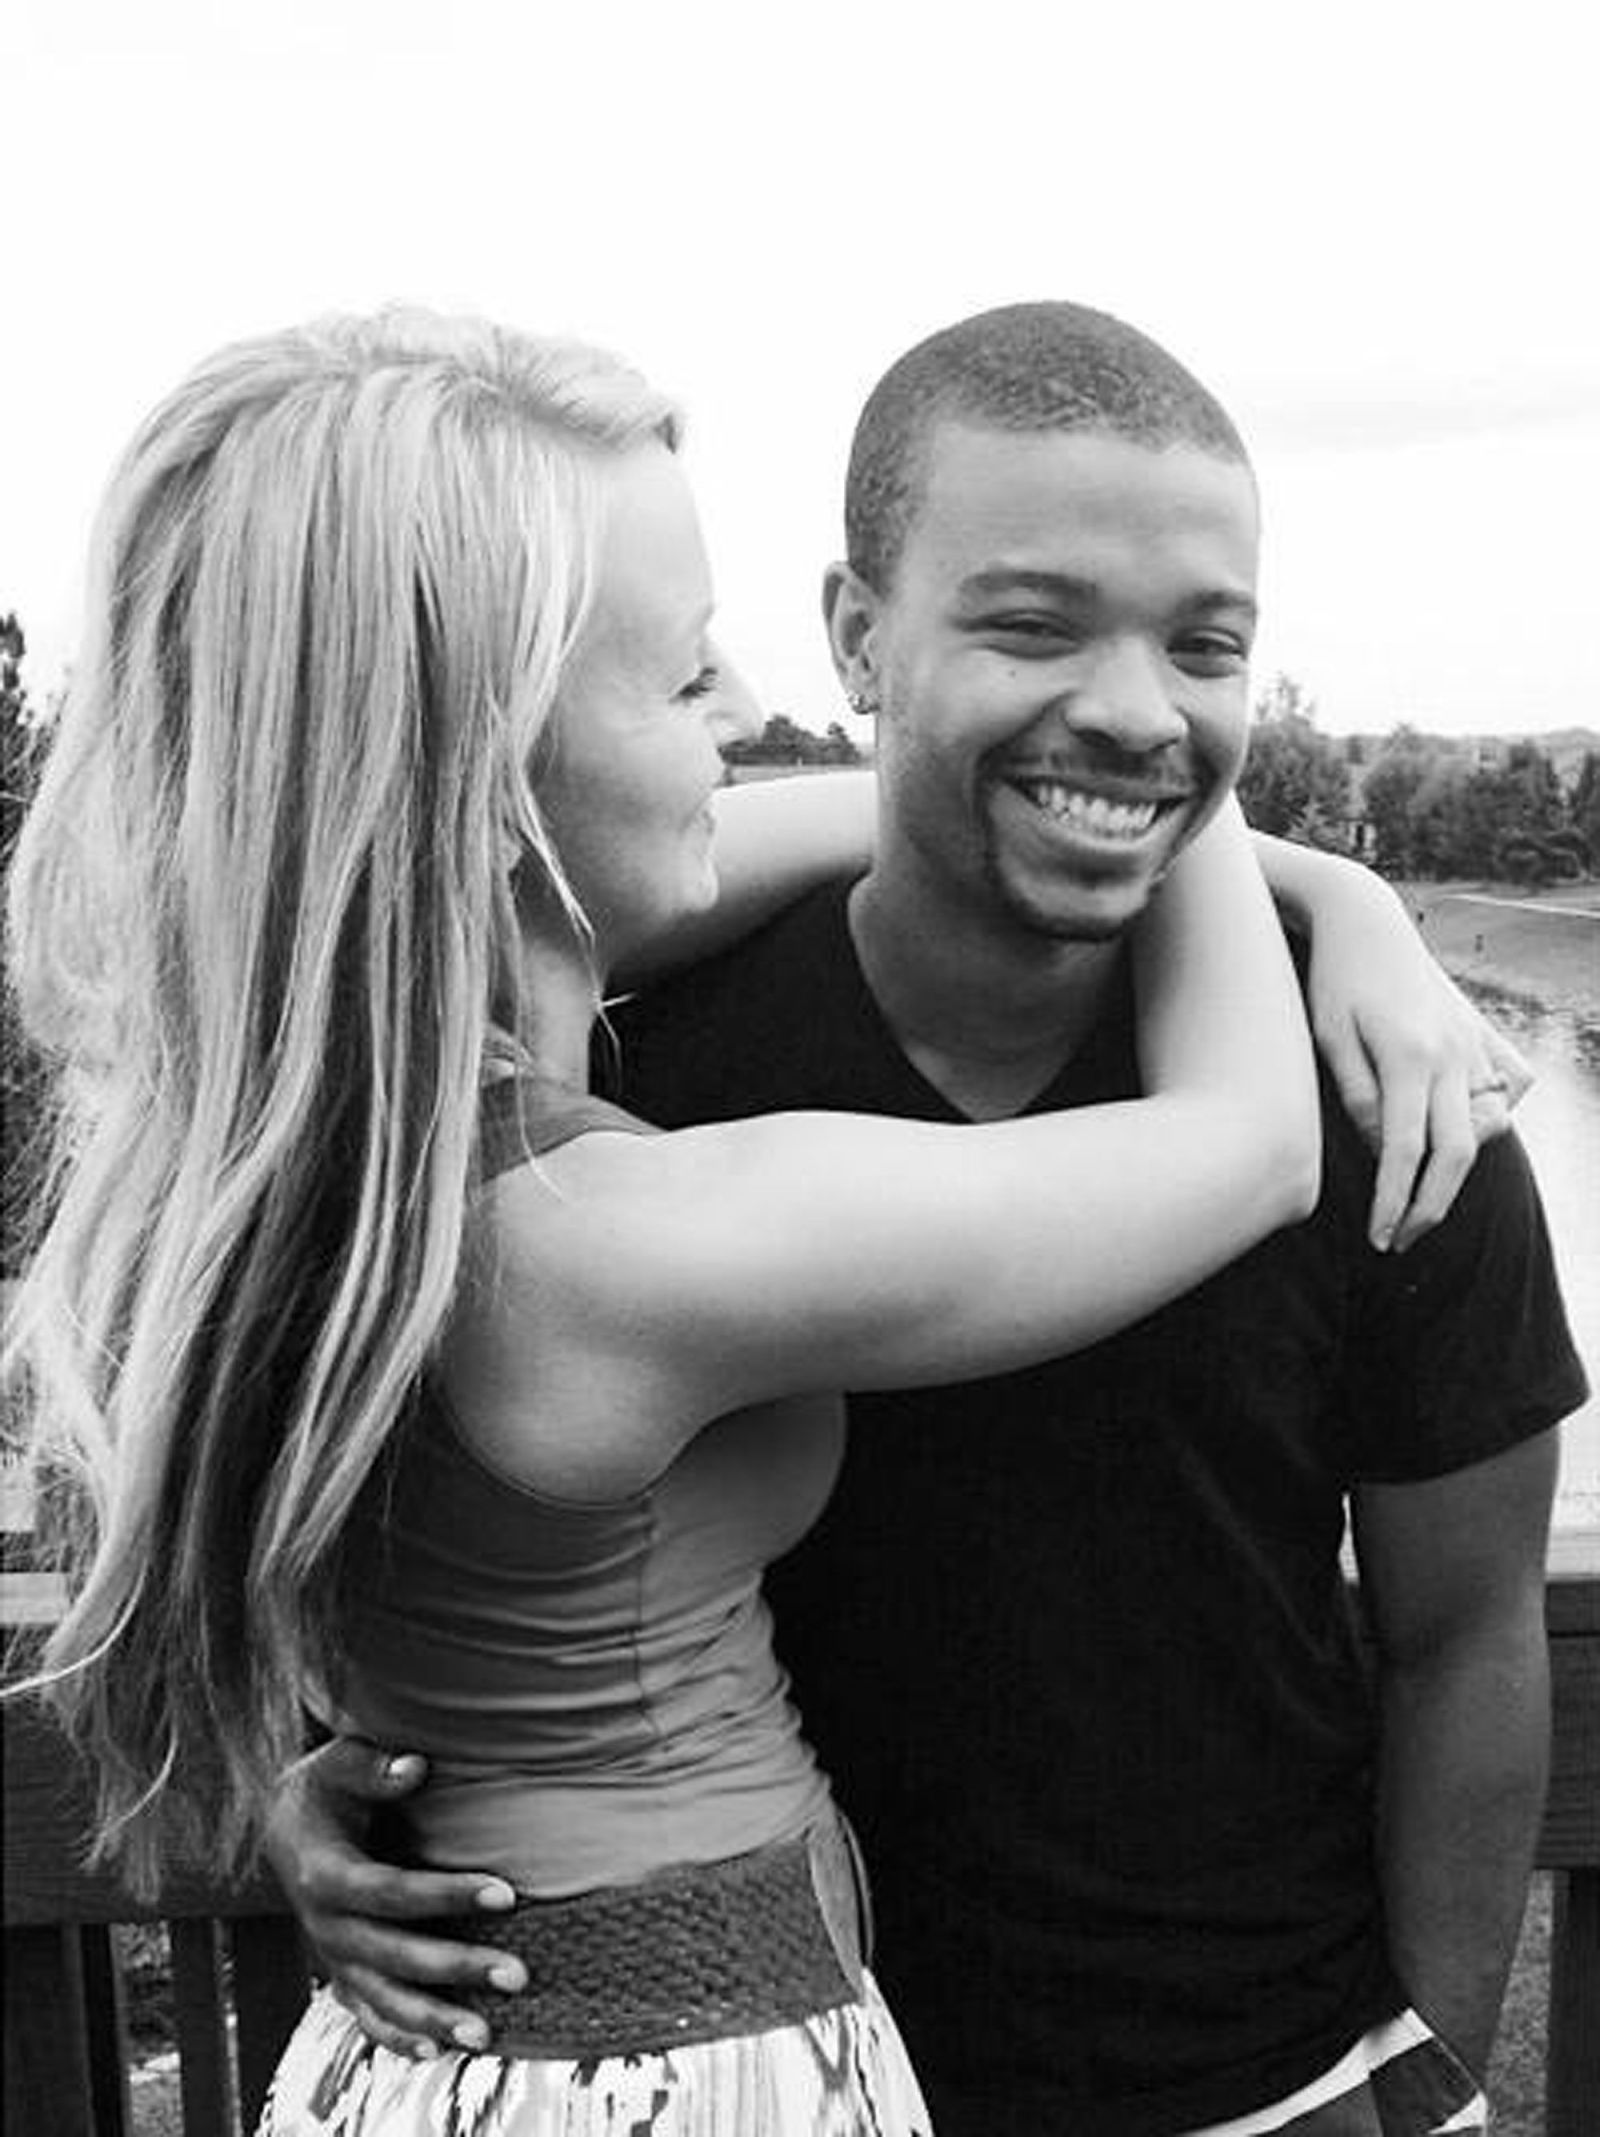 Find Love Online - AfroRomance Has 1000's Of Good Looking Women To Choose From.